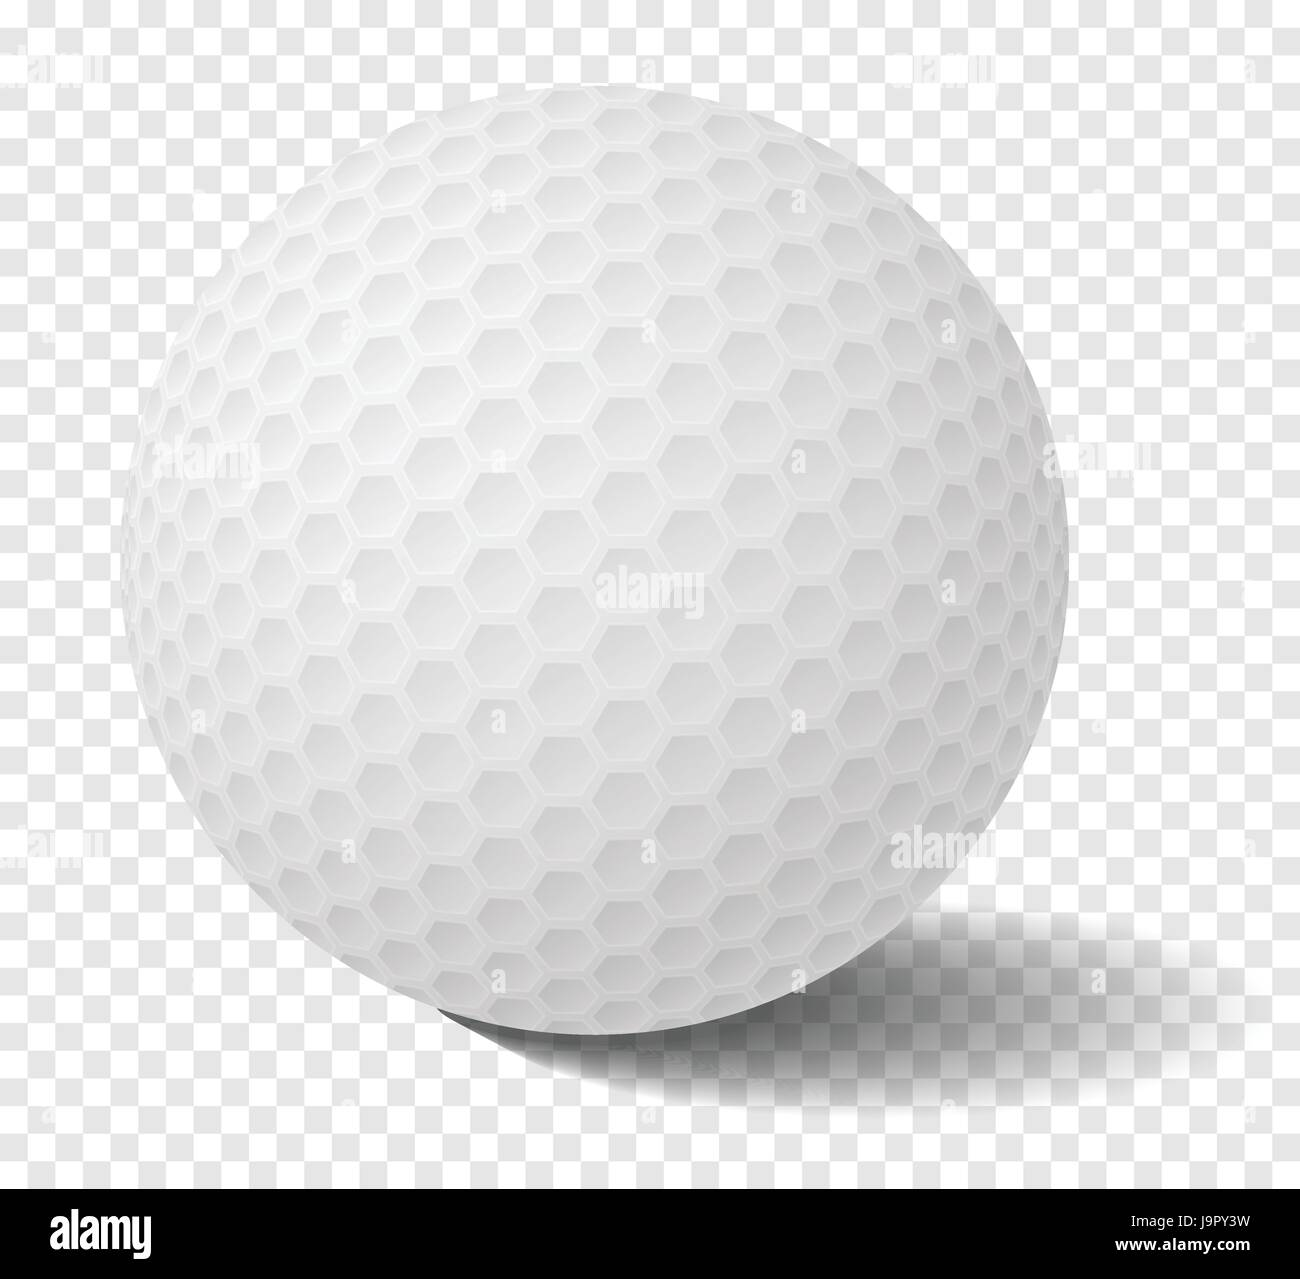 Realistic Isolated golf ball on transparency grid - Vector Illustration - Stock Image